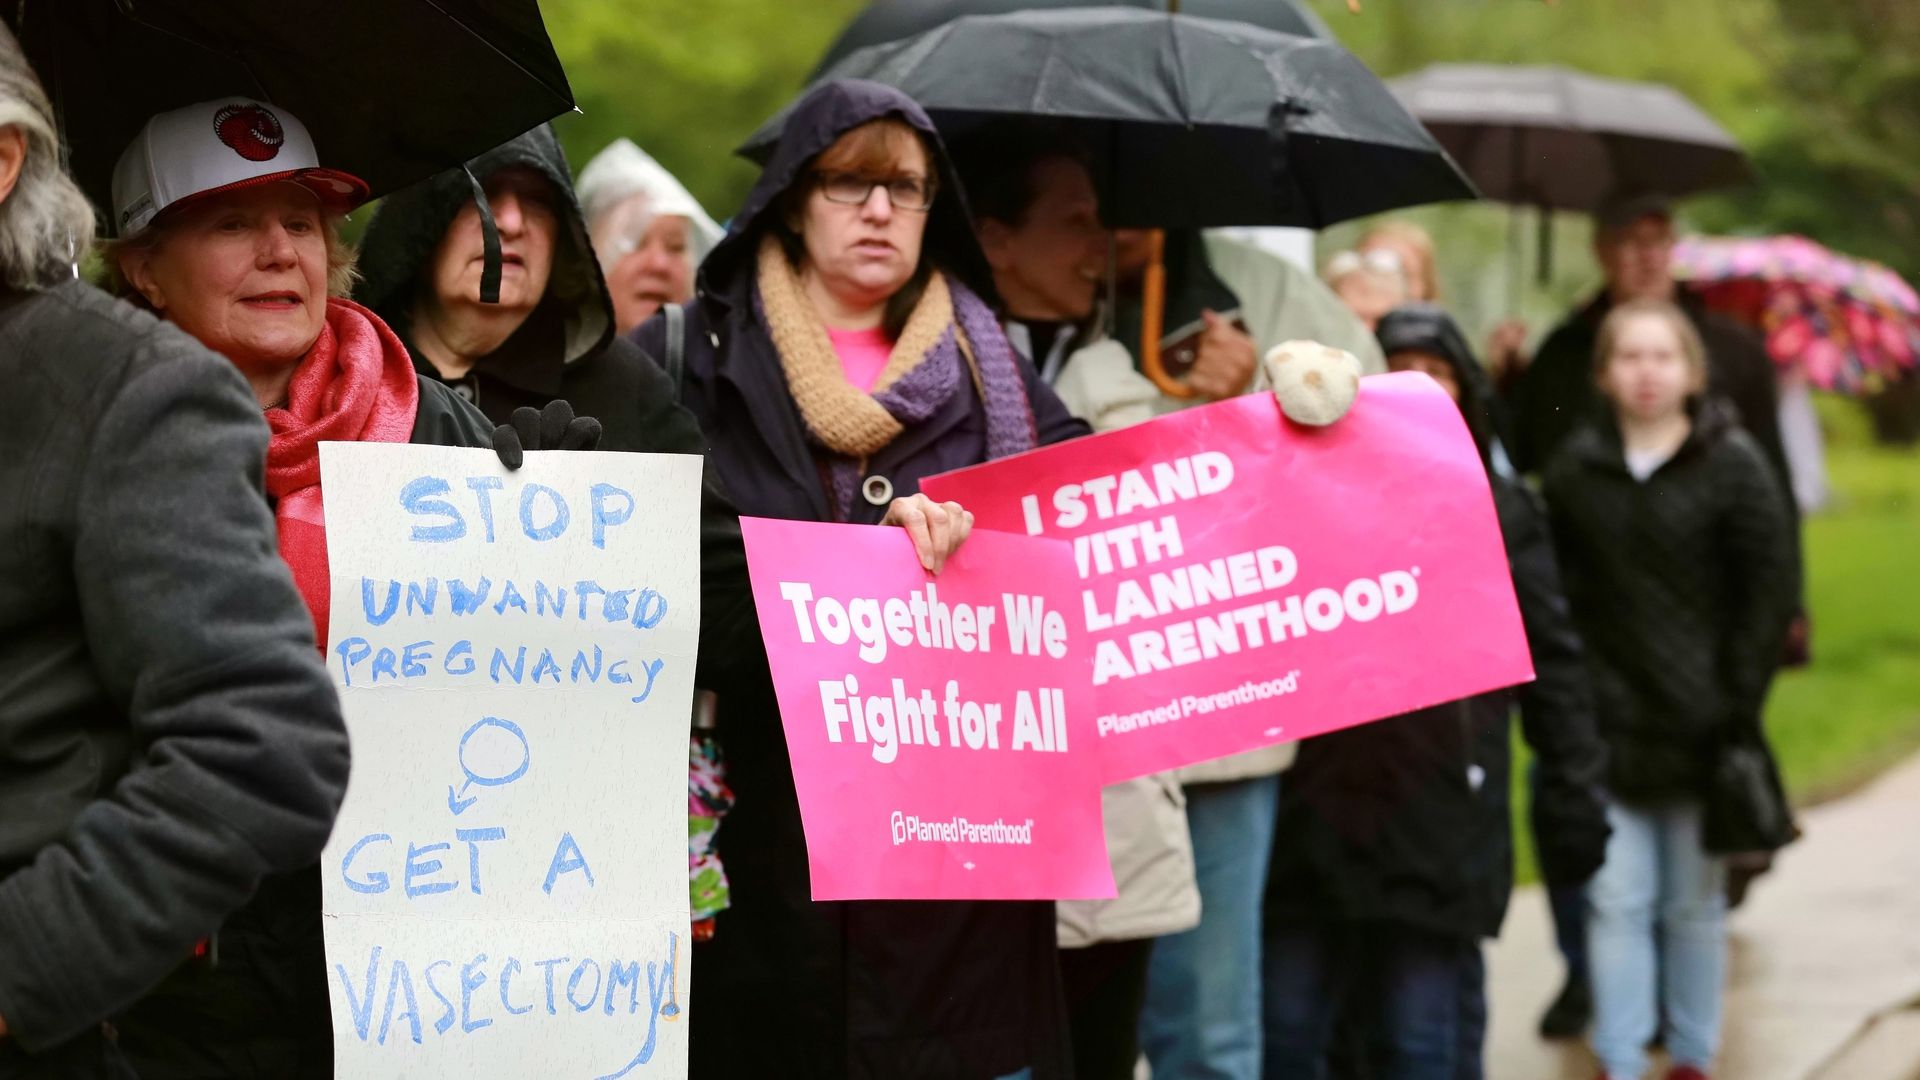 In this image, protestors stand with pro-abortion signs.